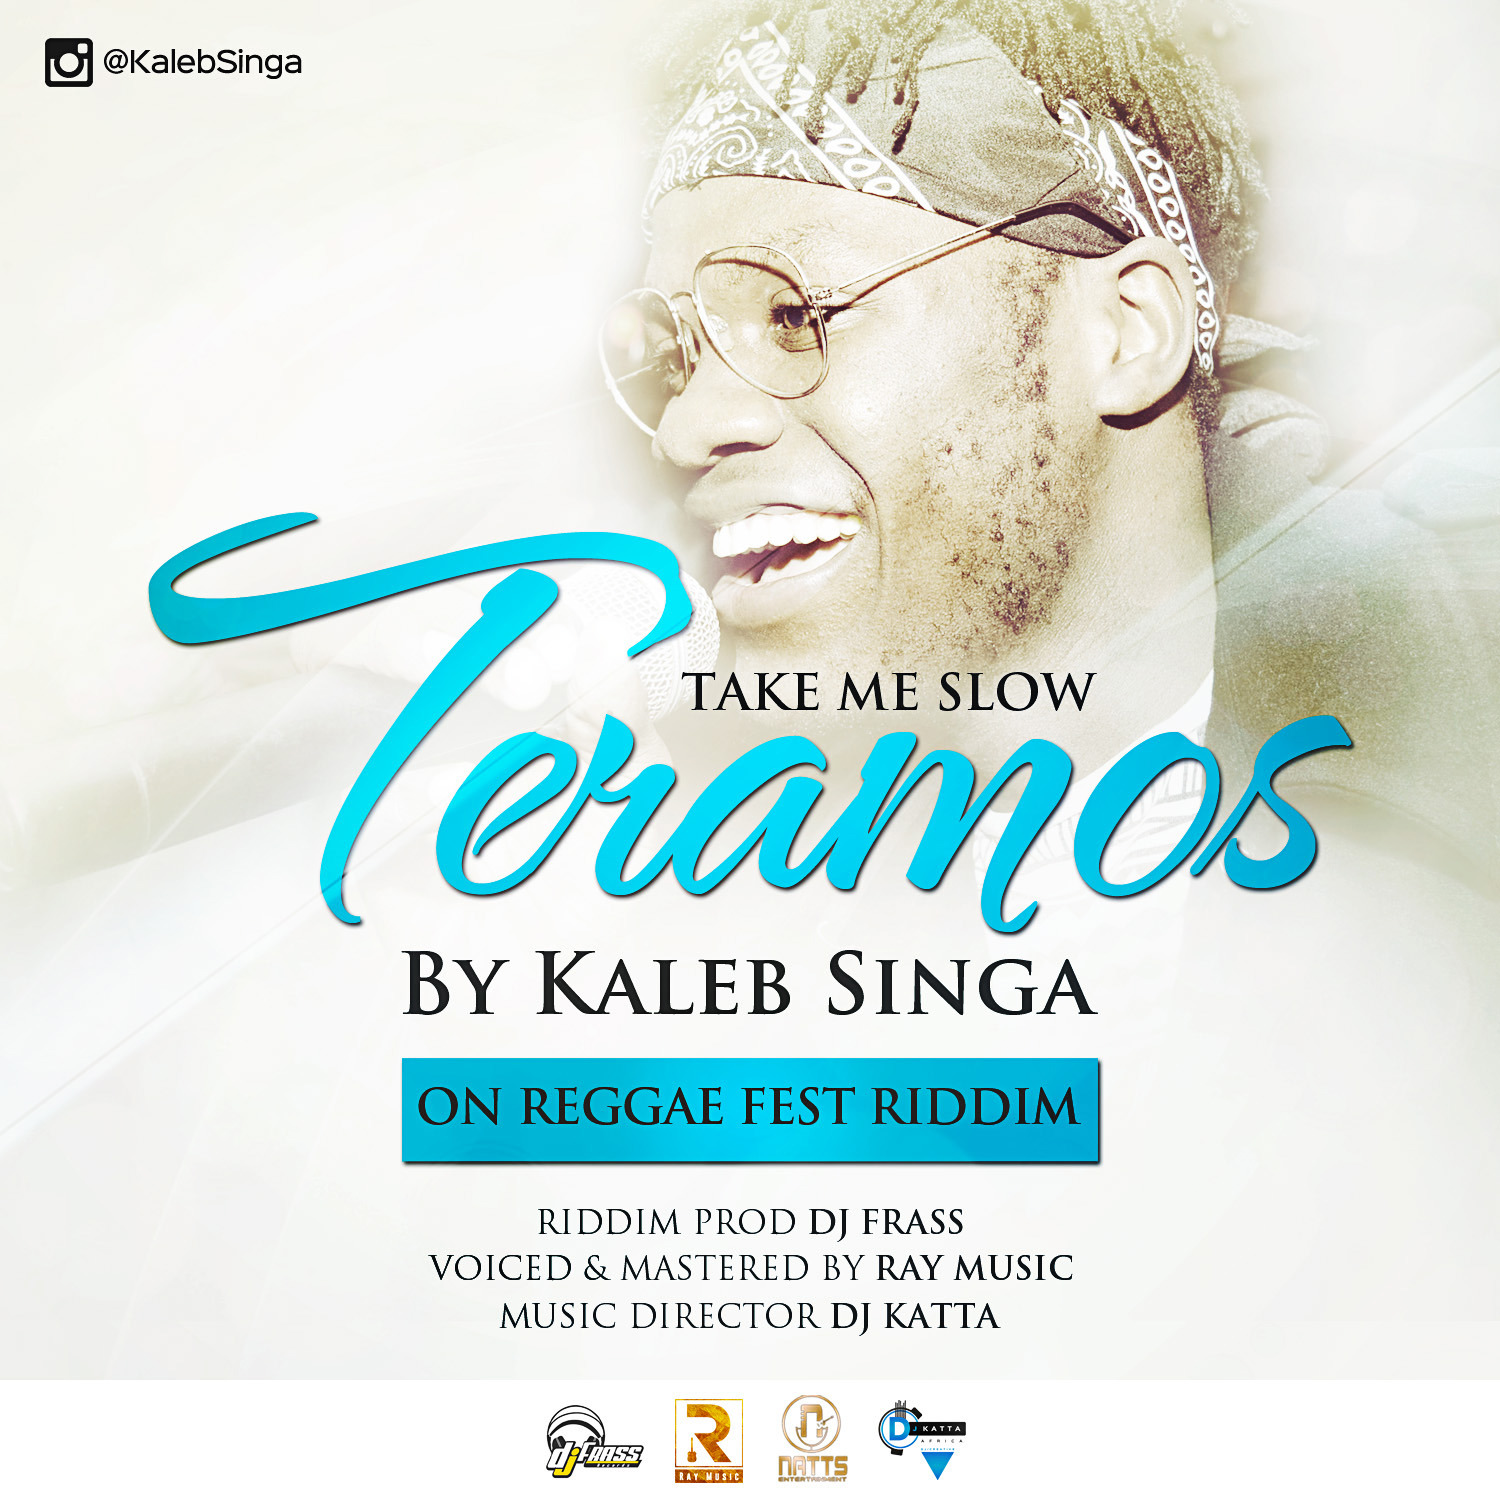 One Man Mp3 Singa: Teramos (Reggae Fest Riddim) .mp3